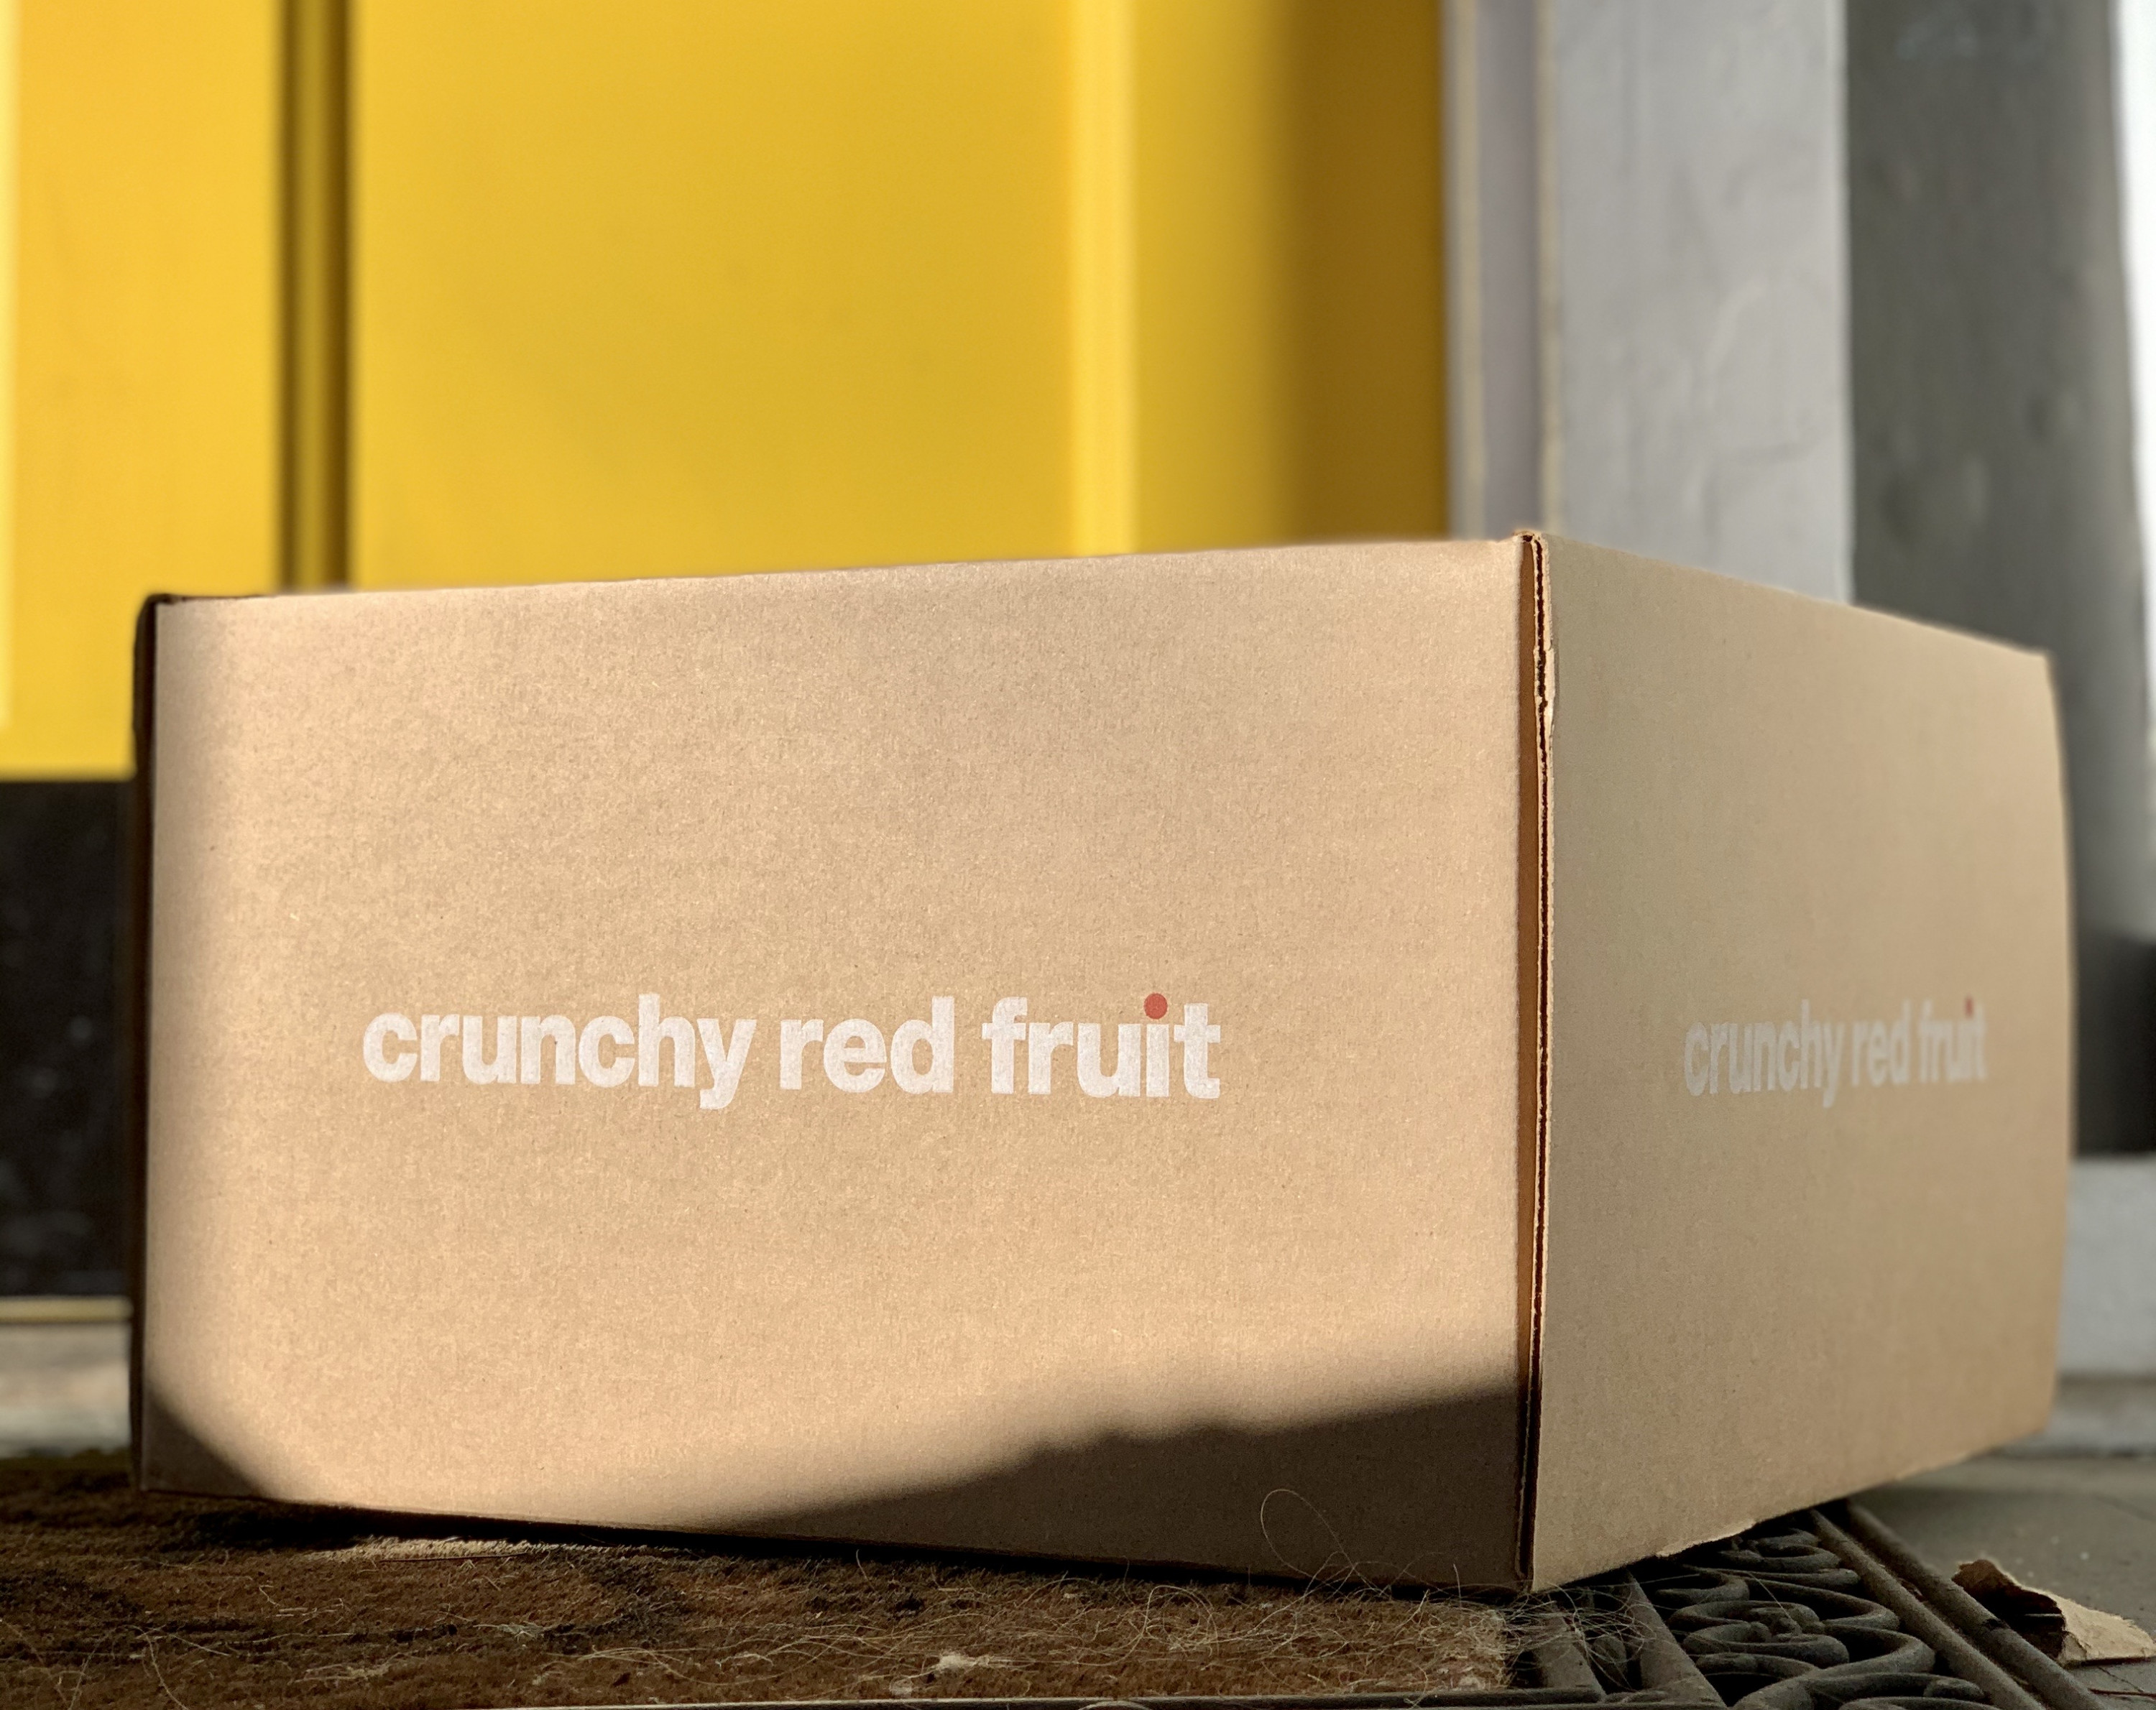 DECA Wine and Dine Kit Help DECA with this awesome food + wine kit! - Crunchy Red Fruit